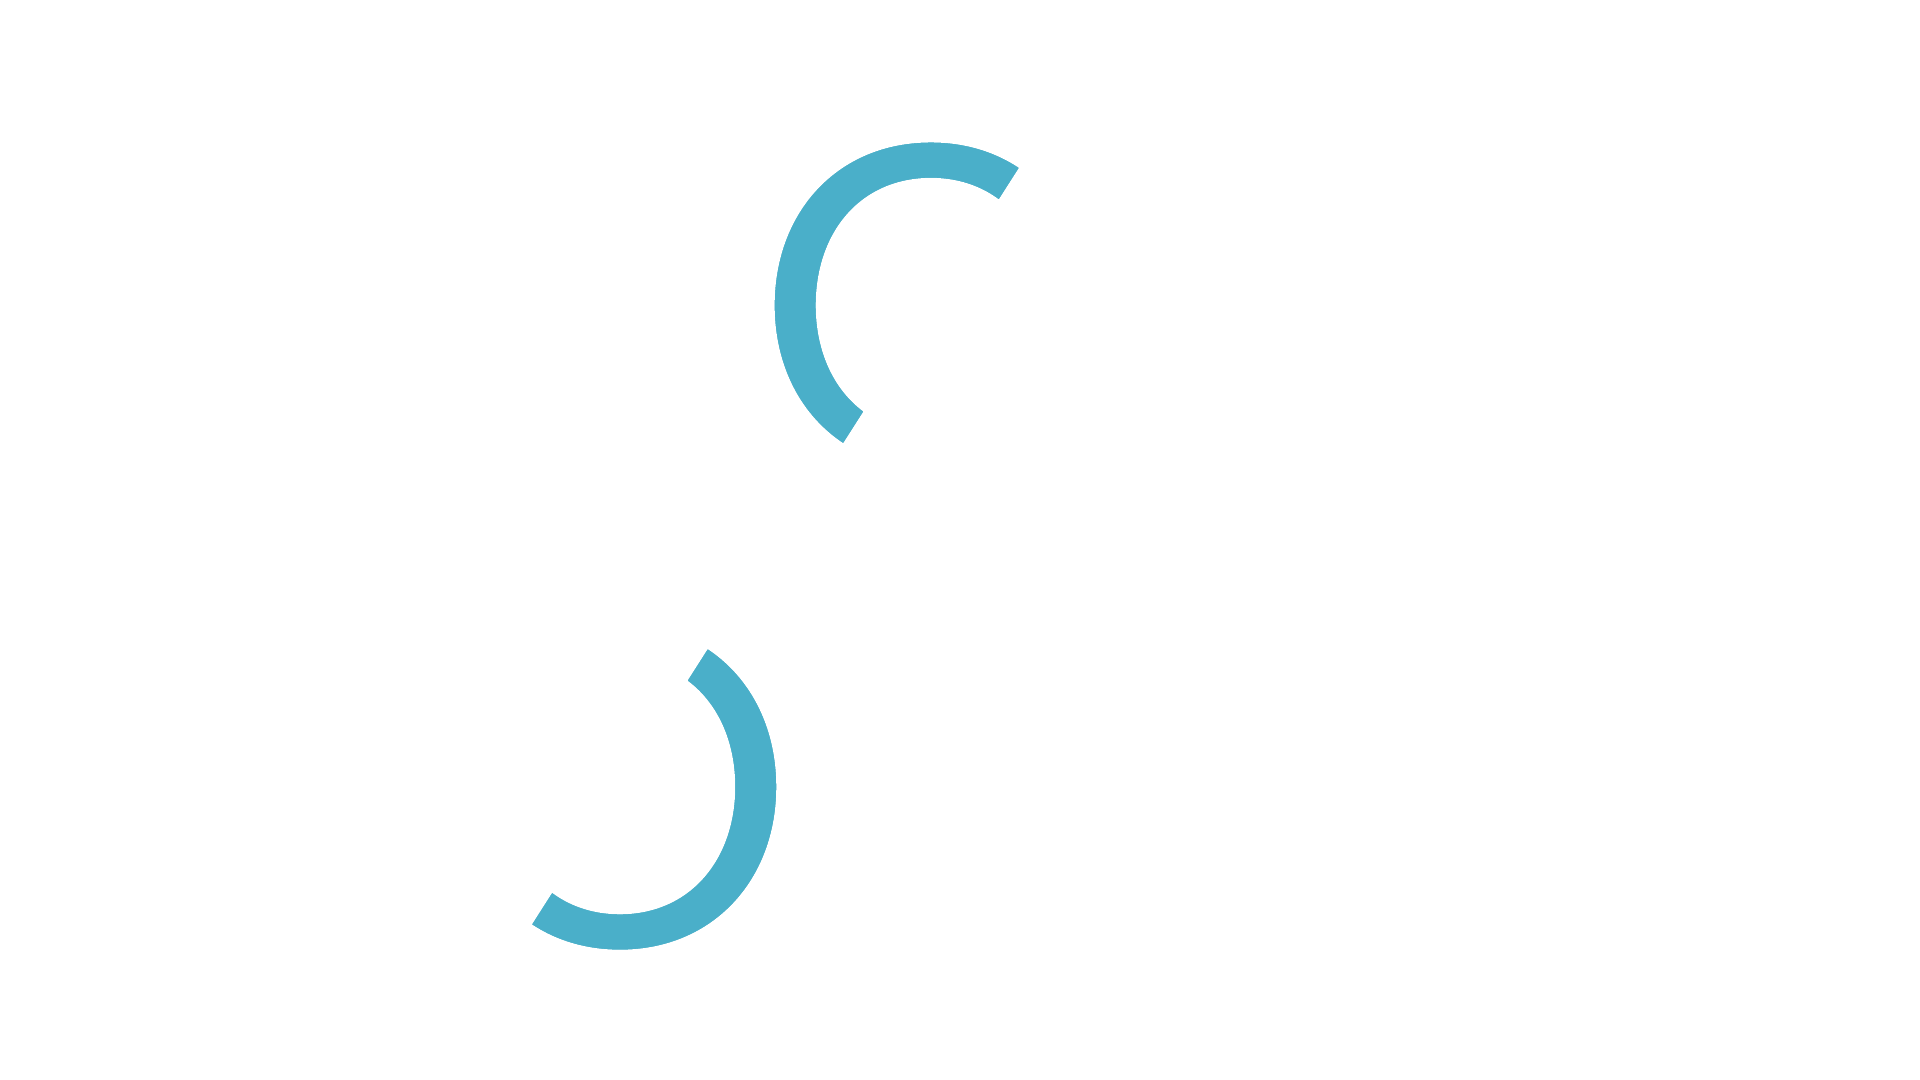 Grove Youth